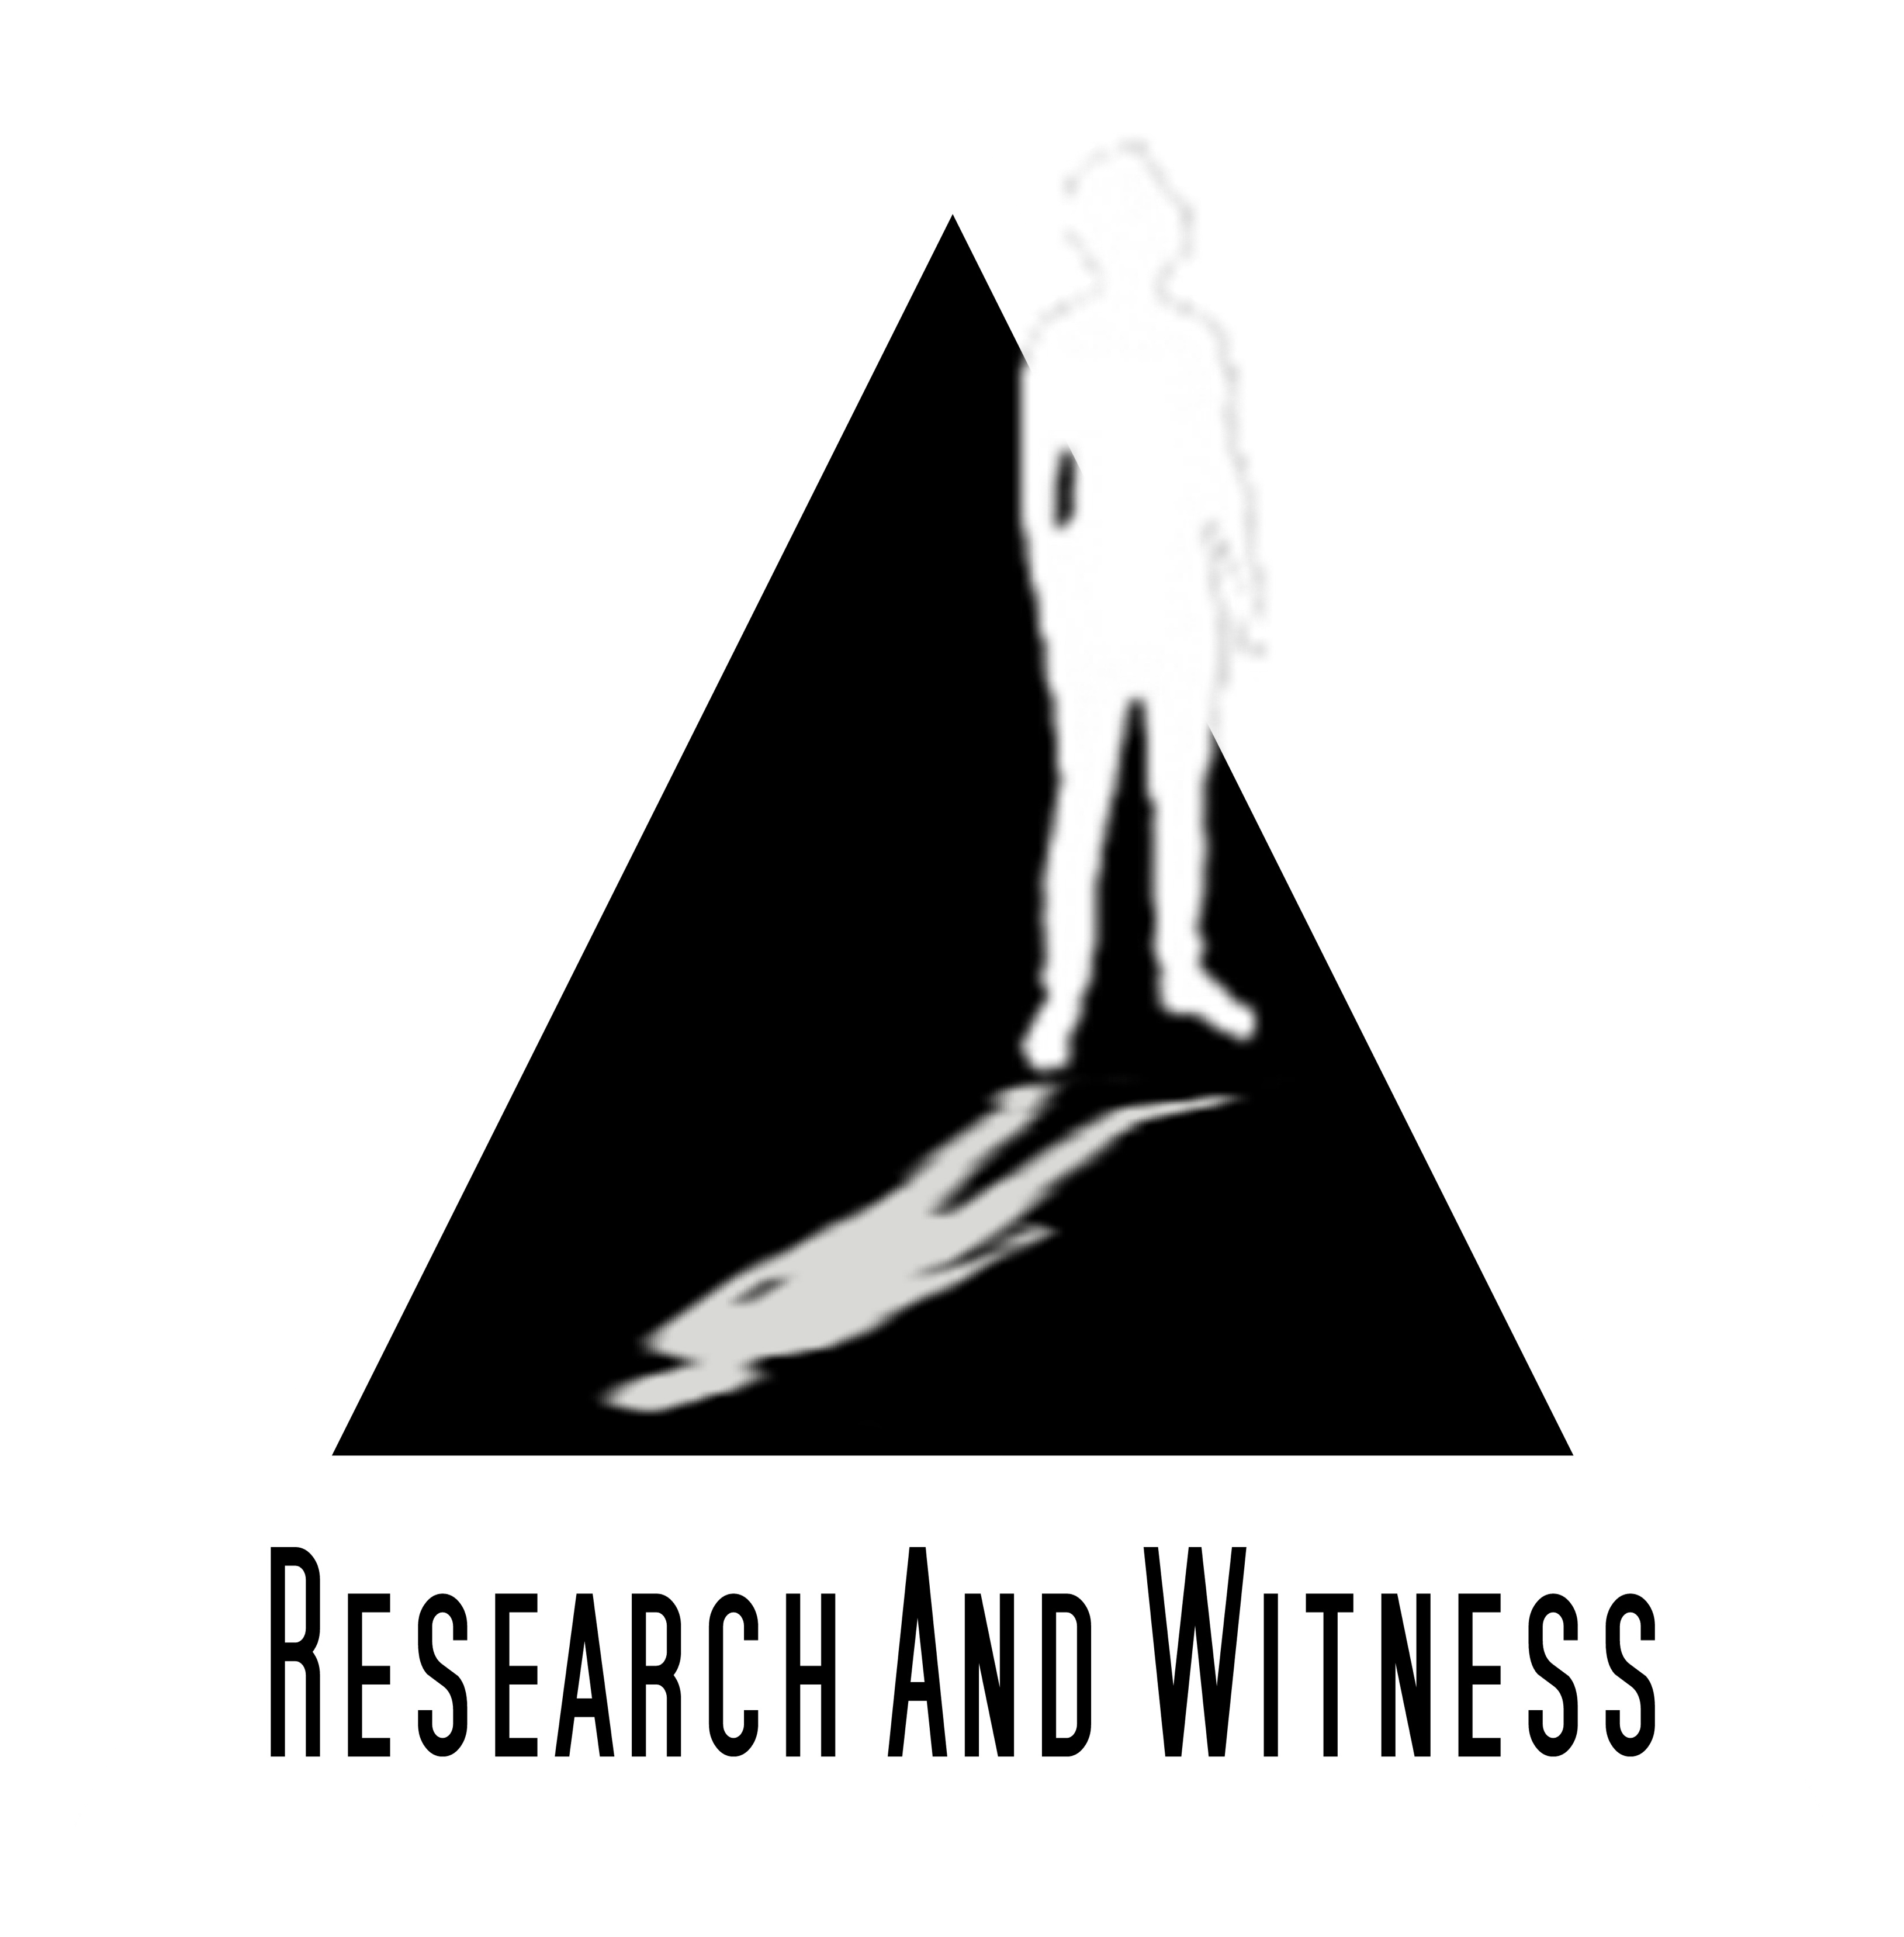 Research And Witness